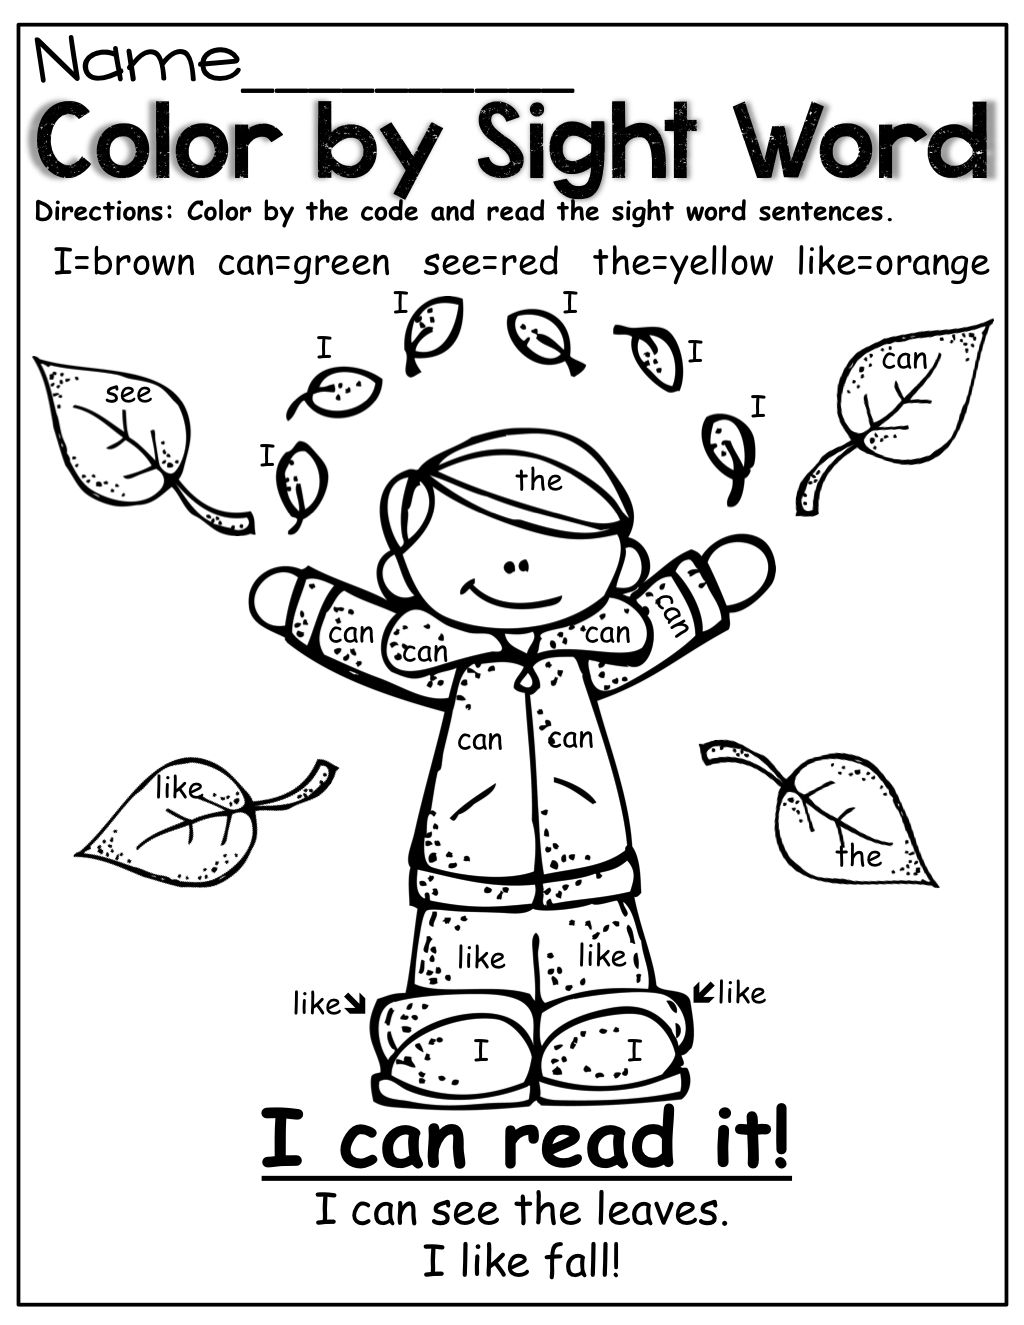 Worksheets Color By Sight Word Worksheets download coloring pages sight word free design 11108 thecoloringpage pages